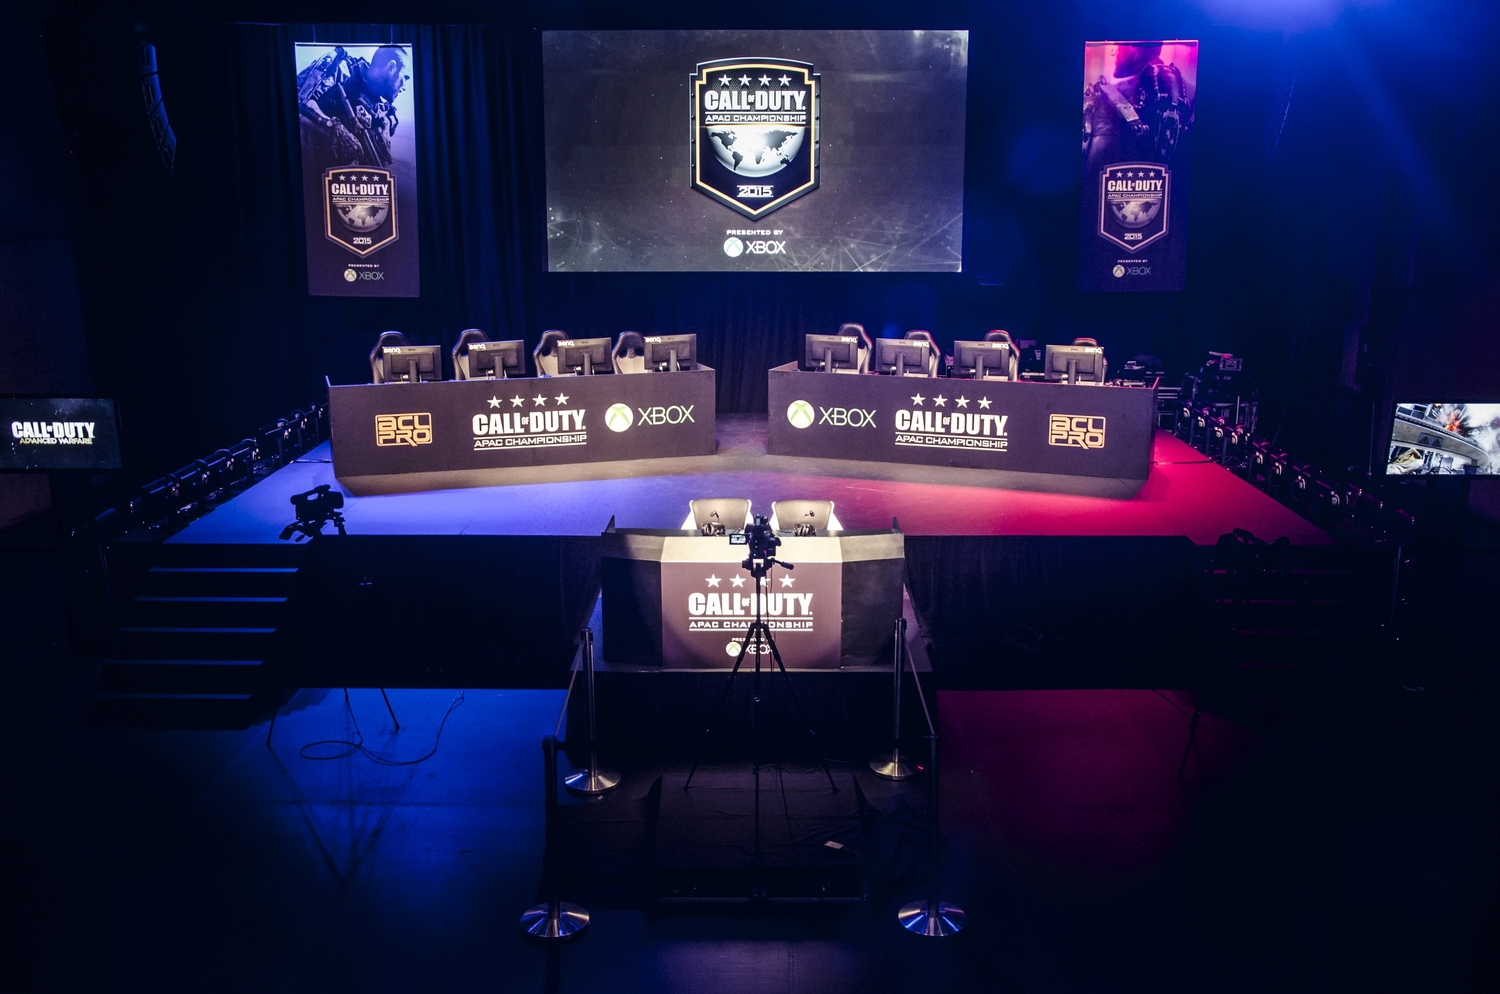 Call of Duty Championships - 2015